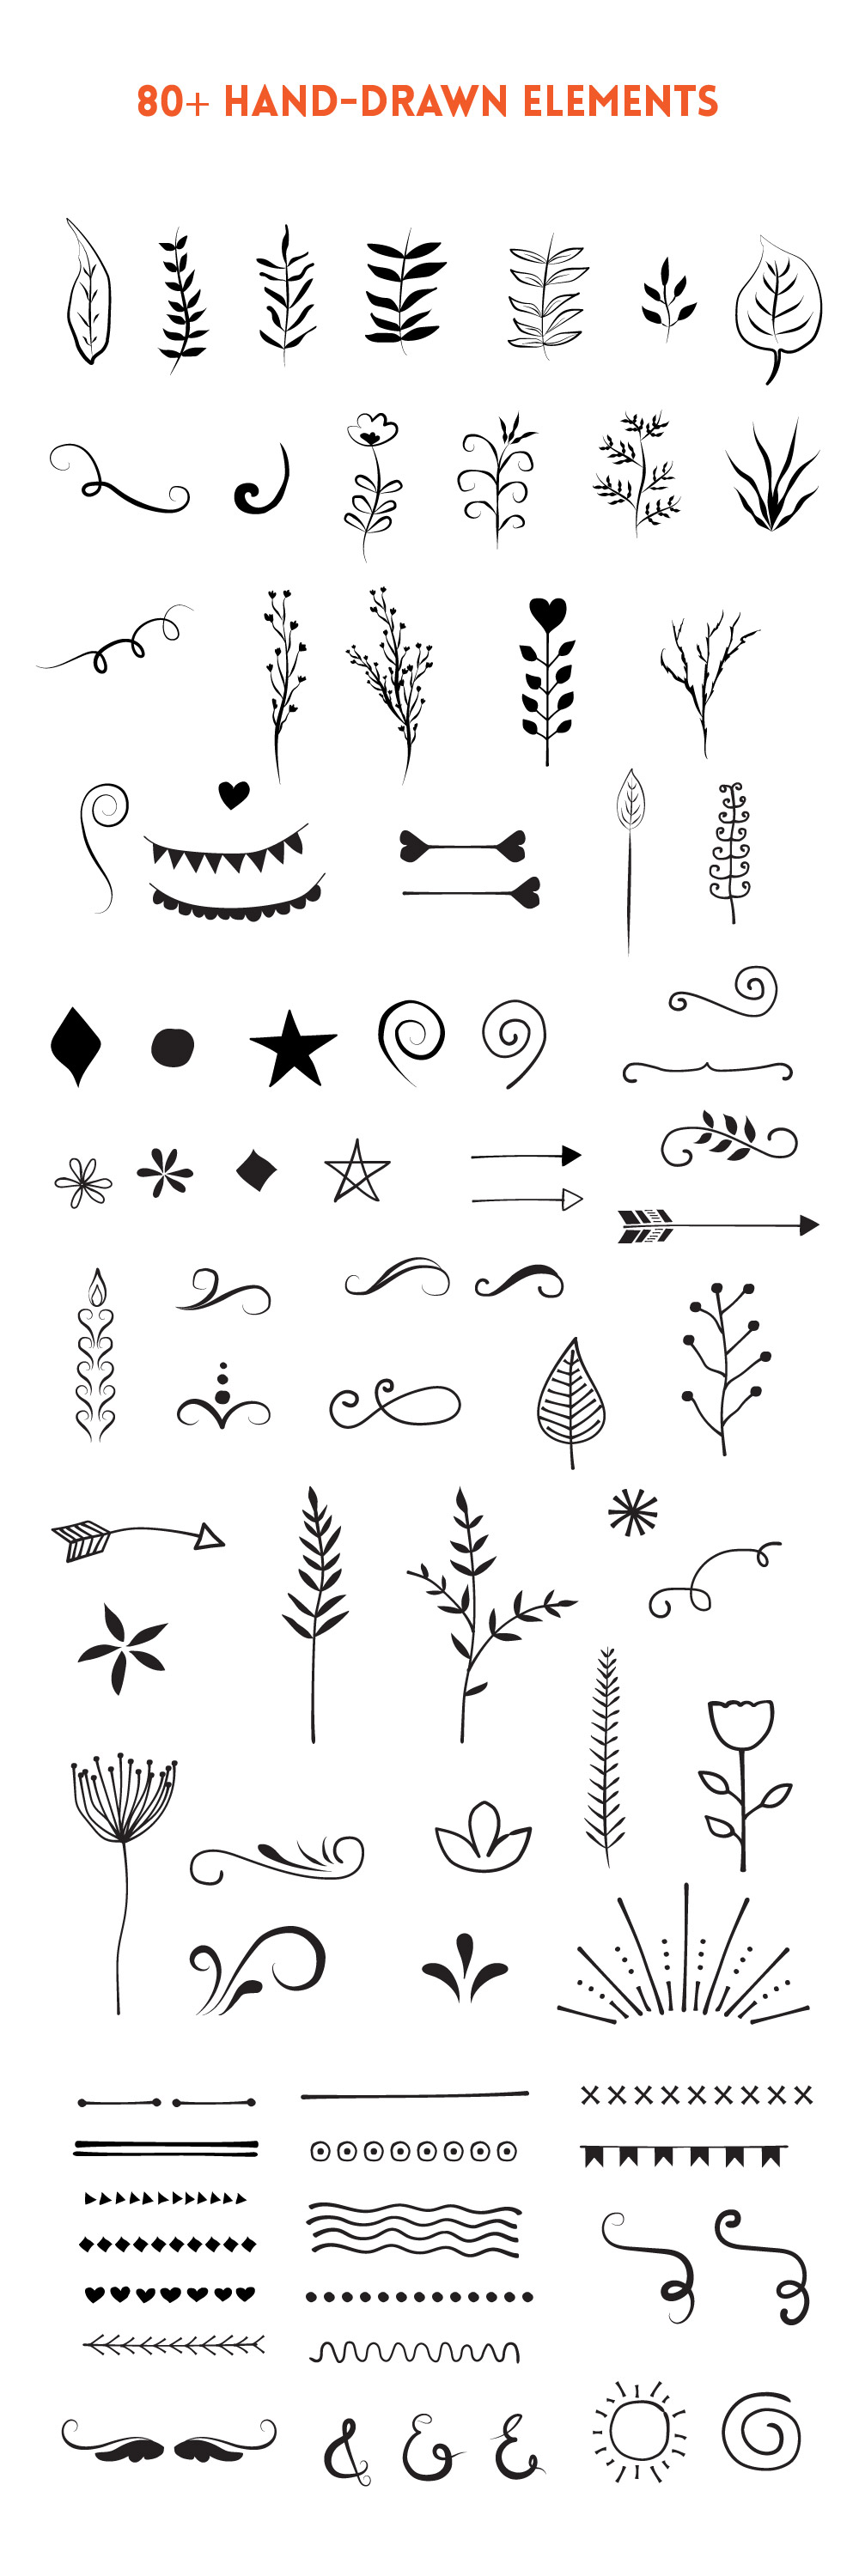 Handdrawn Vector Elements